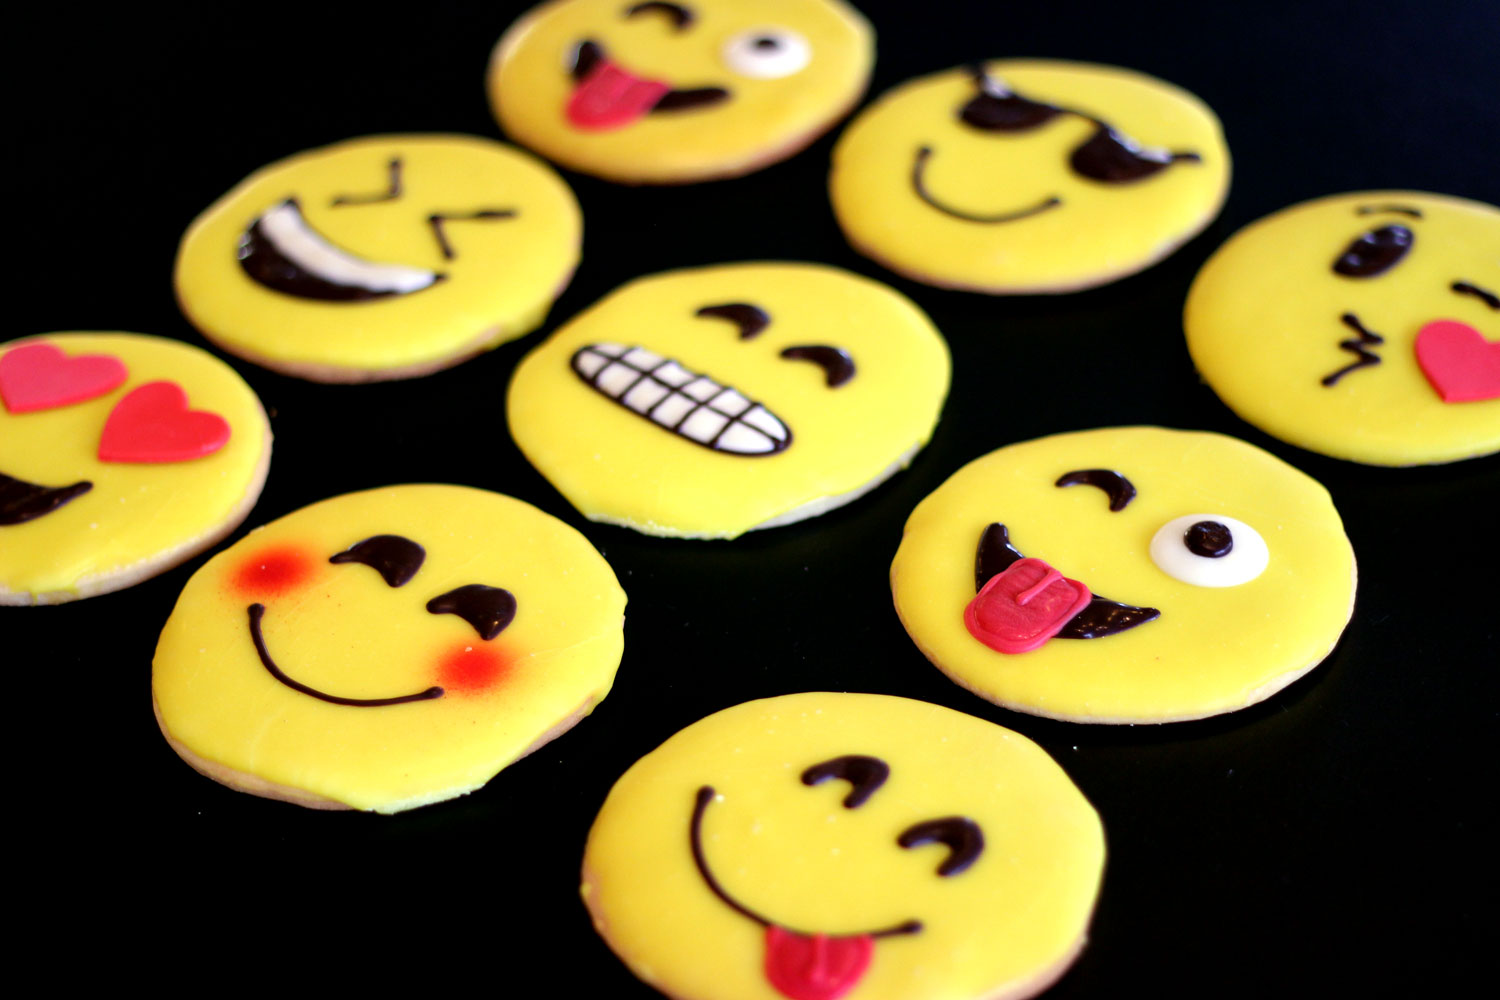 Emoji-Smiley-Face-Cookies-web